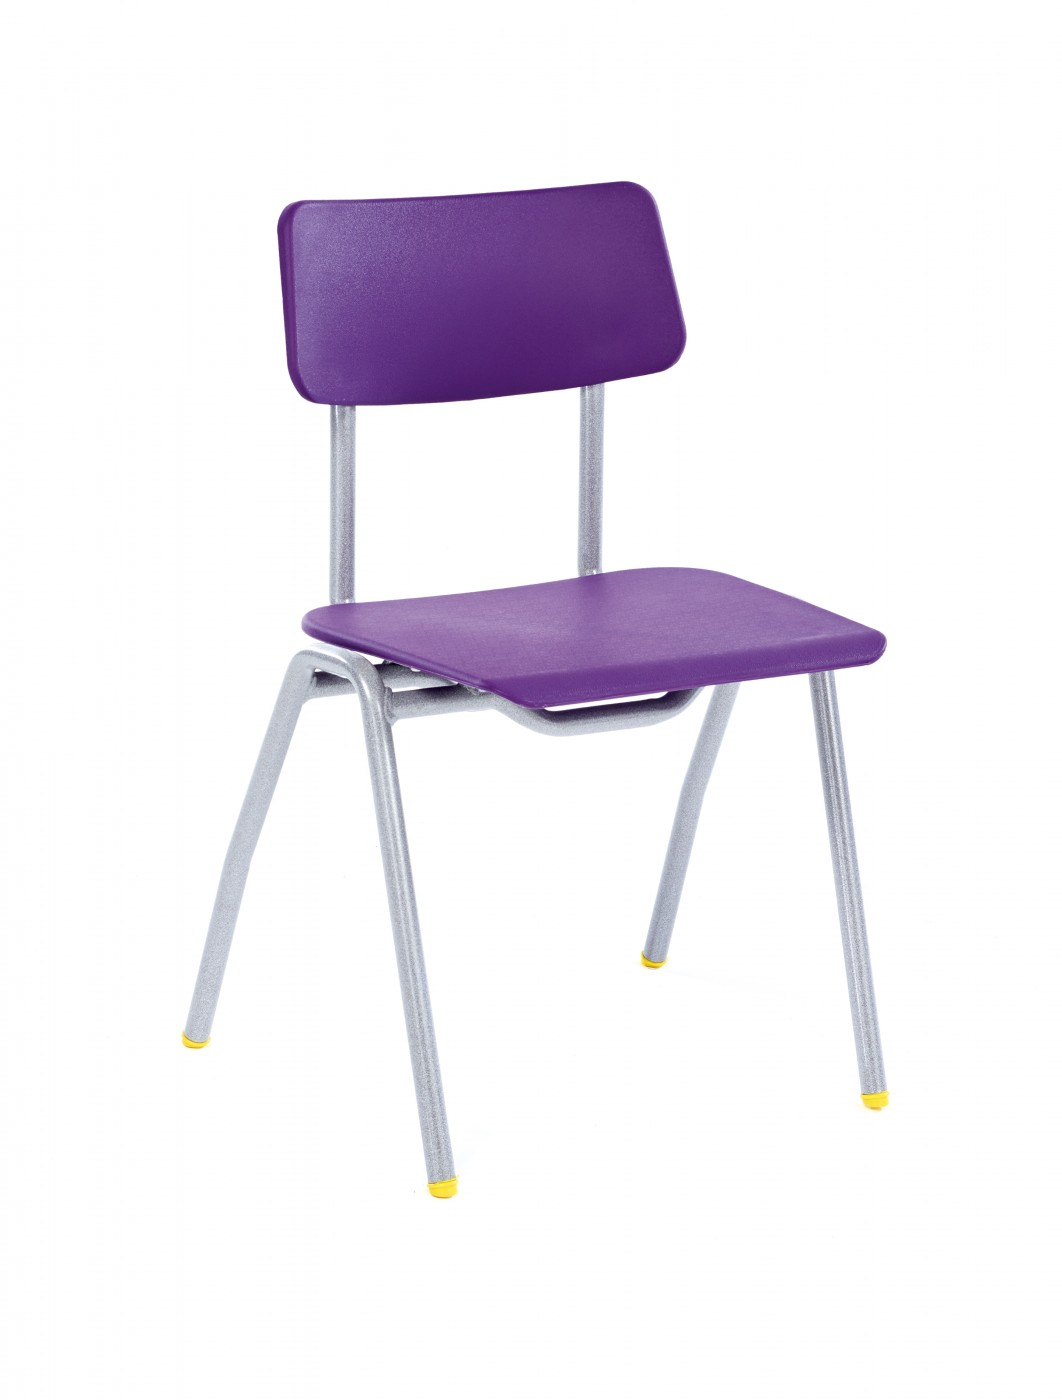 Beautiful Metalliform BS Chairs   Age 3 4 Years Polypropylene Classroom Chairs BSA    Enlarged View